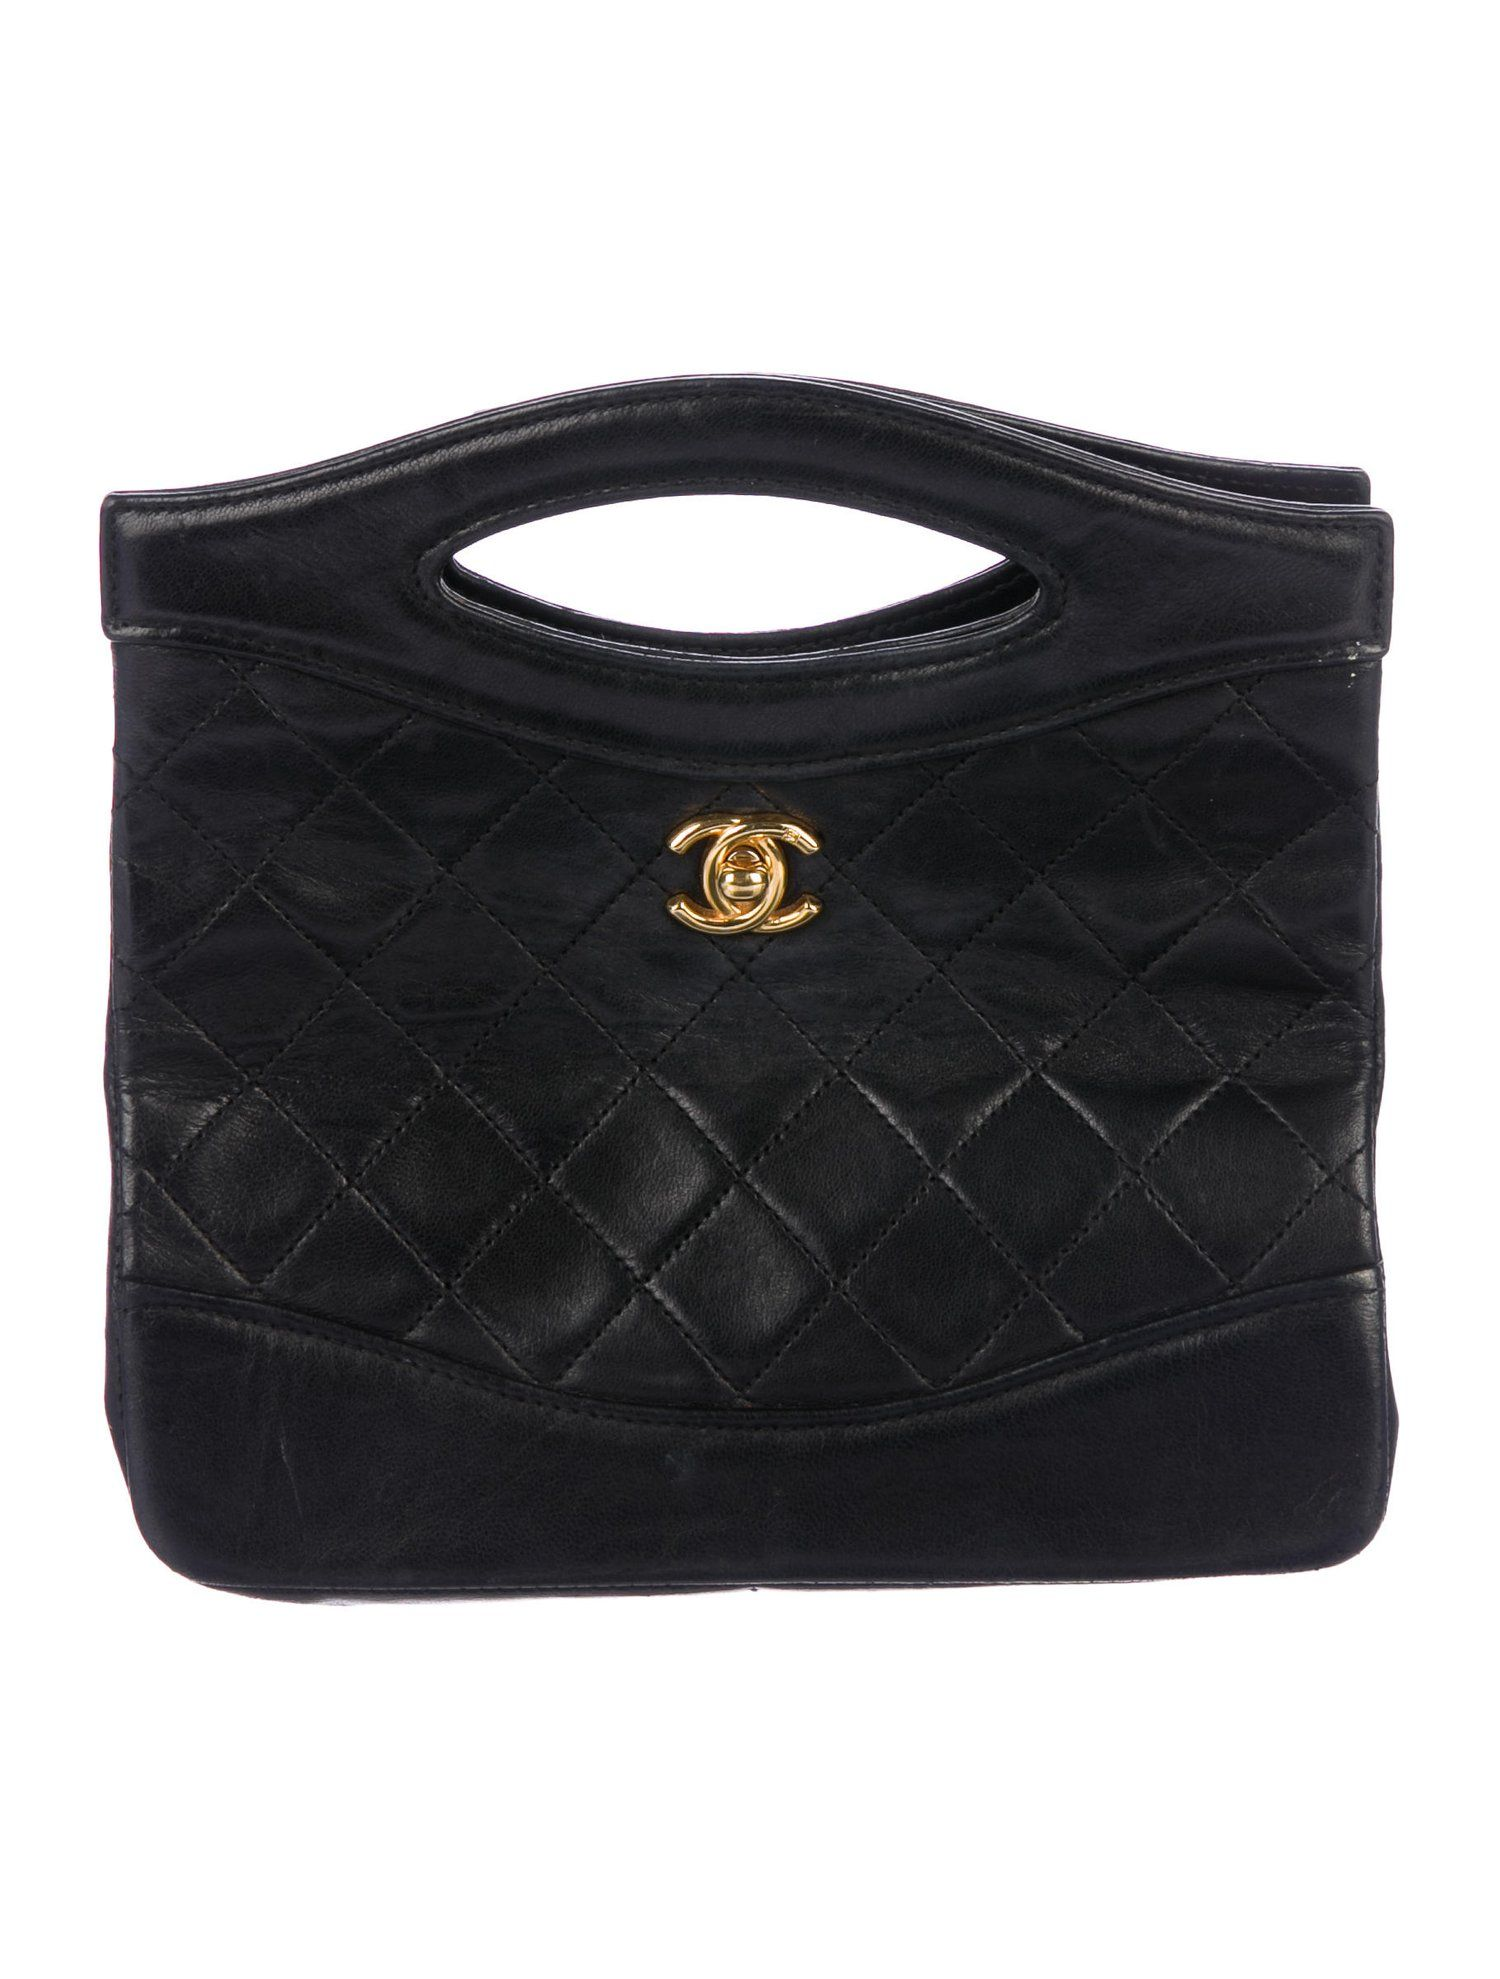 535a00b760ff Chanel Vintage Lambskin Handle Bag - Handbags - CHA303188